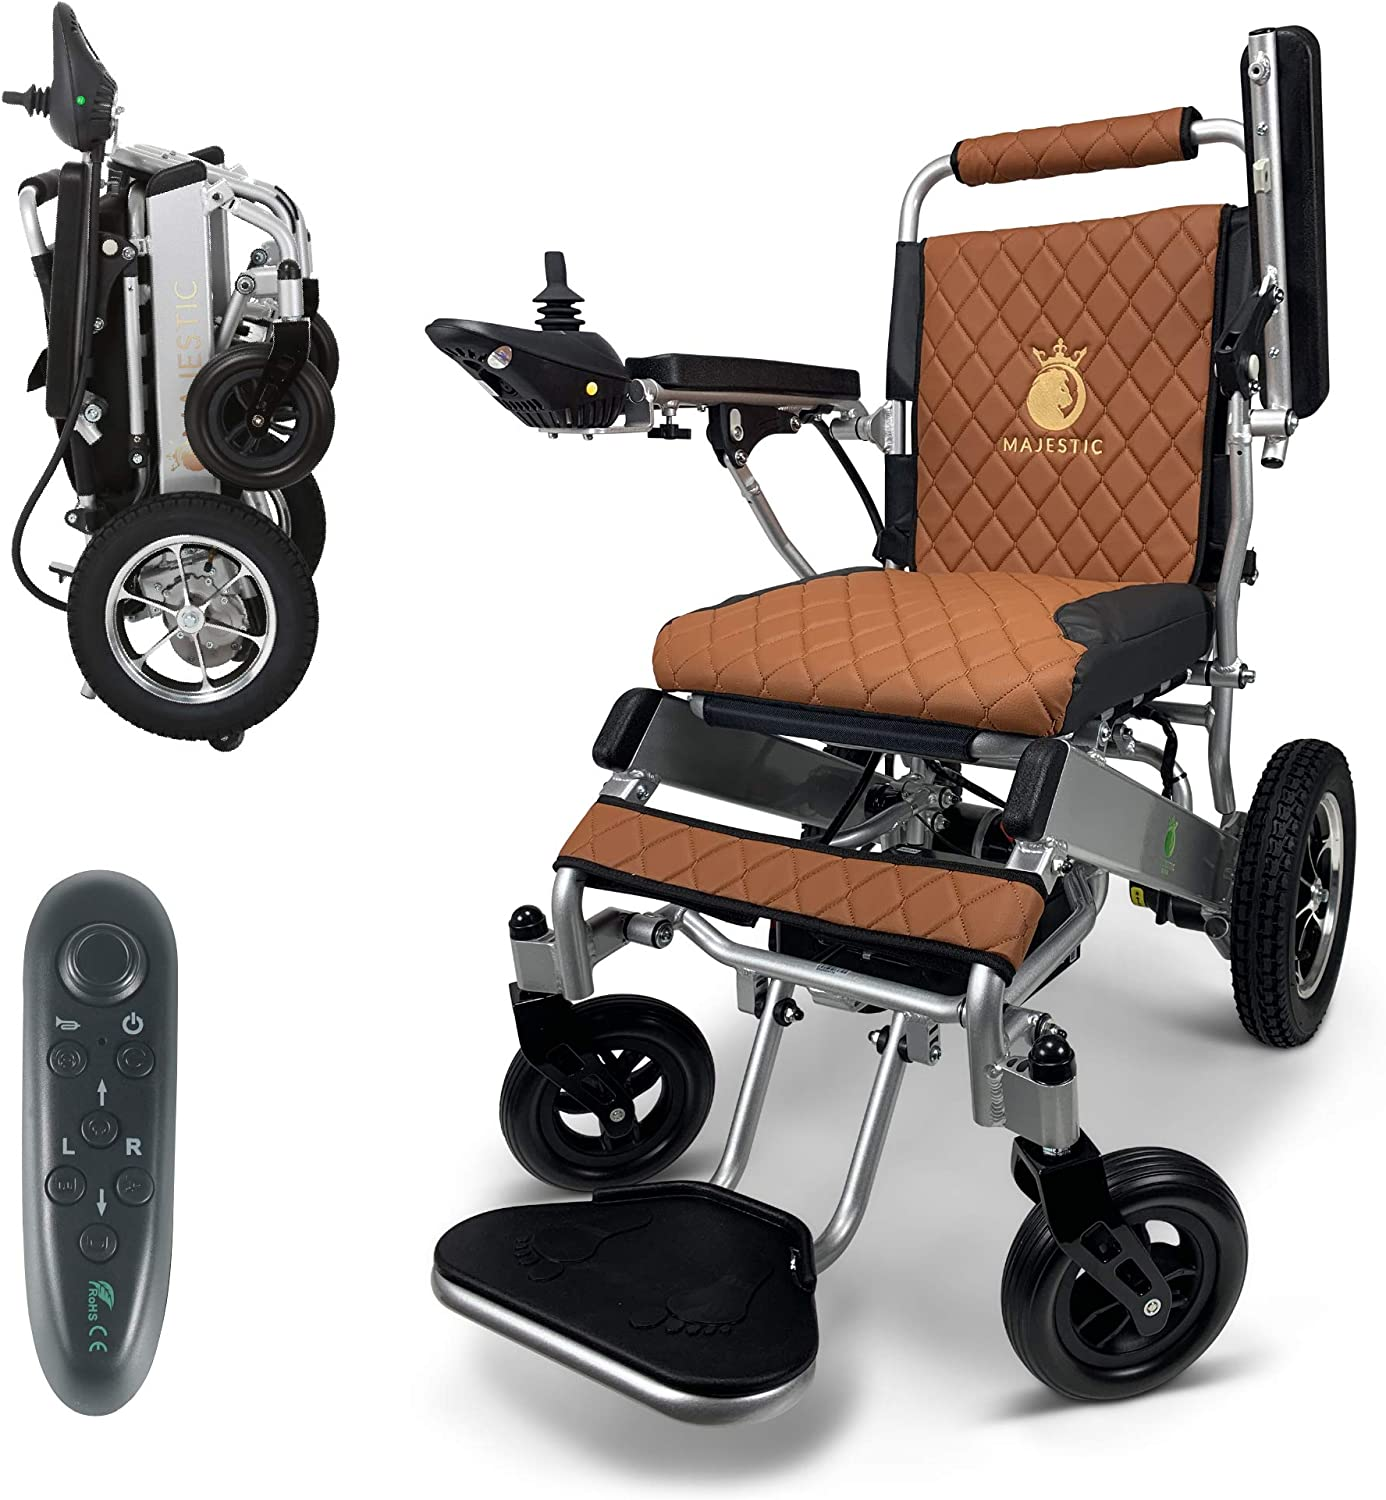 2020 Limited Edition New products world's highest Memphis Mall quality popular Remote Foldable Control Wheelchair Electric